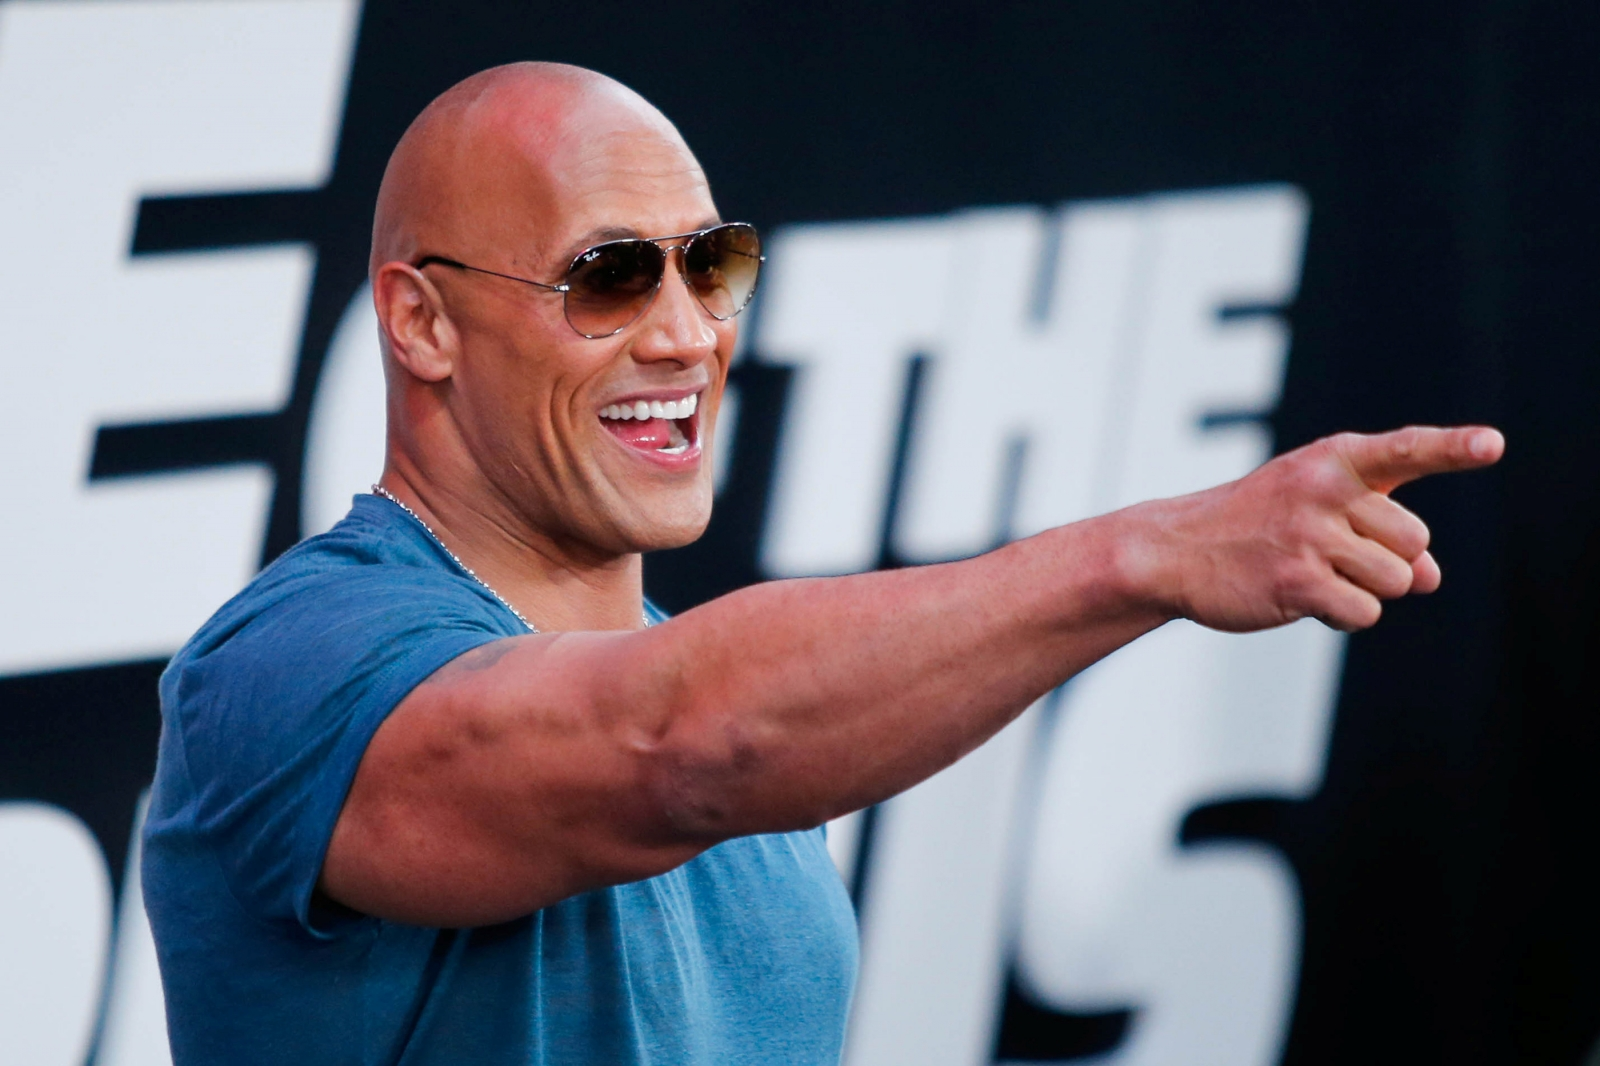 Dwayne 'The Rock' Johnson for President? The people say yes